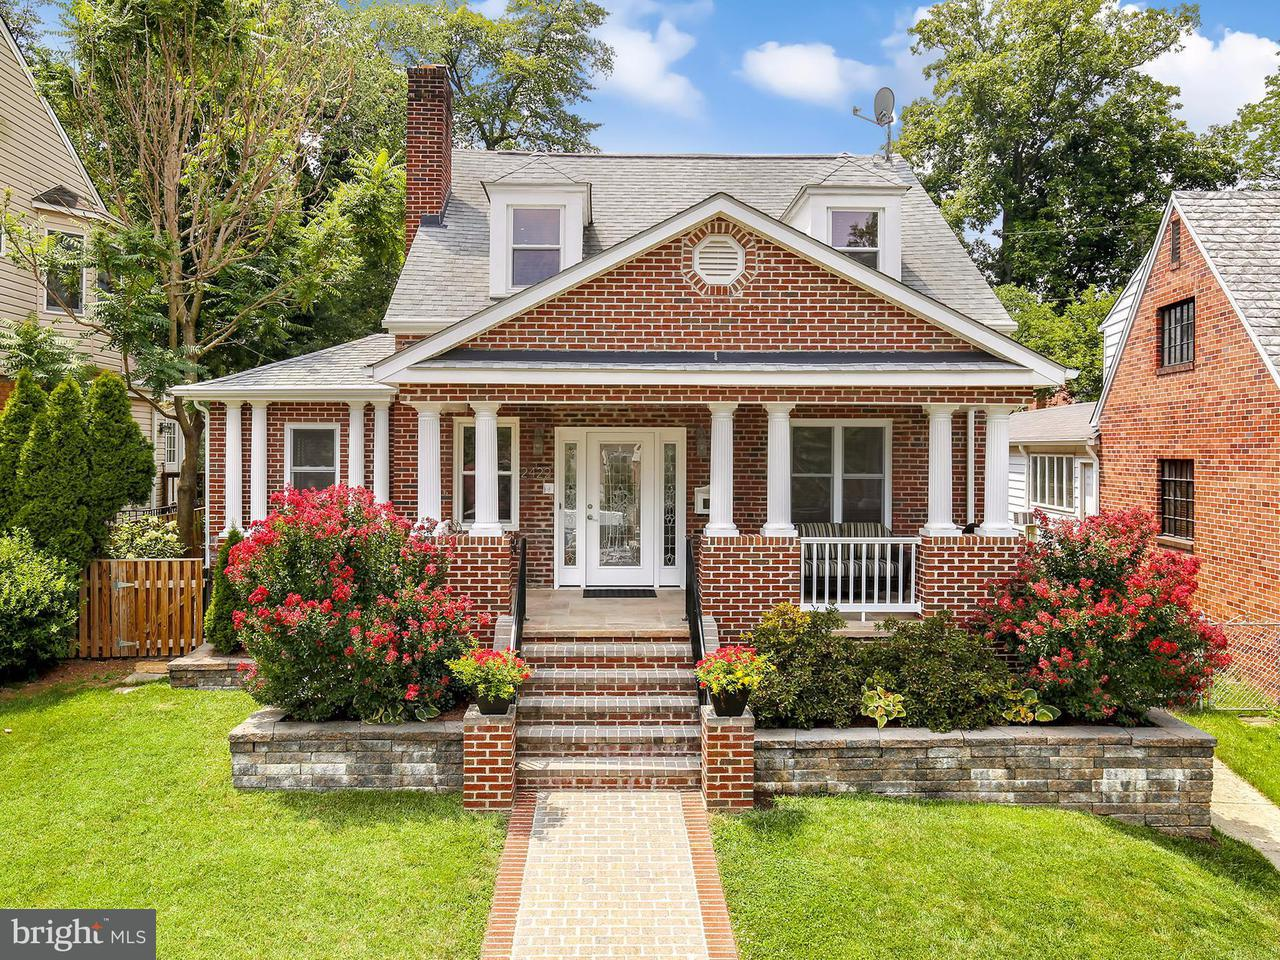 Single Family Home for Sale at 2422 IVES ST S 2422 IVES ST S Arlington, Virginia 22202 United States